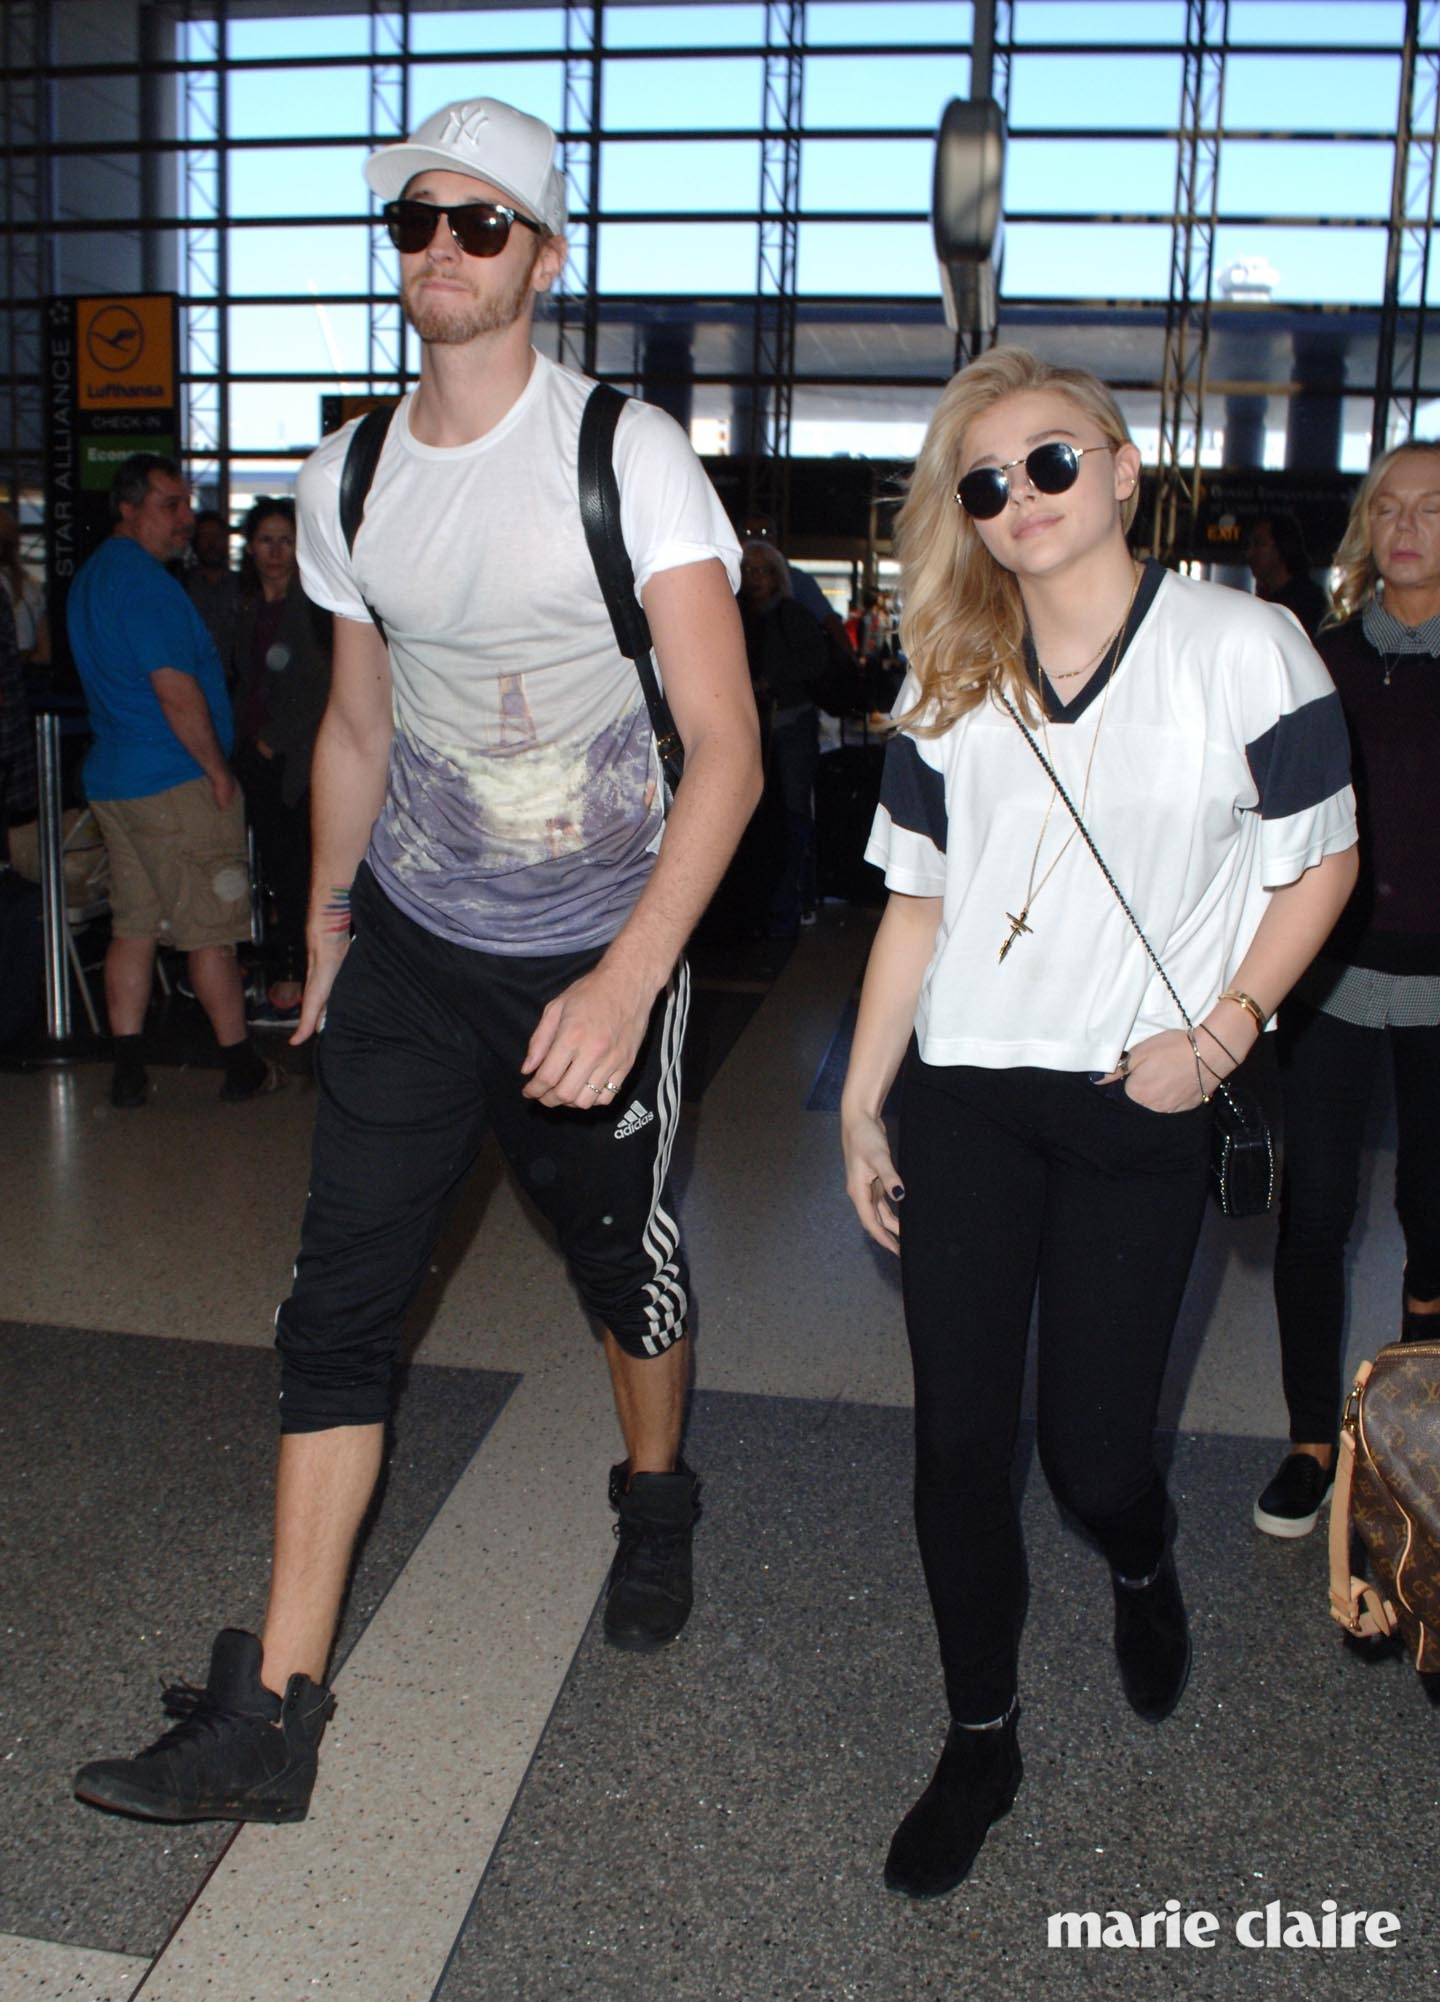 Chloe Moretz departs from Los Angeles International Airport (LAX) with her 6 ft 4. brother, Trevor Featuring: Chloe Grace Moretz, Trevor Moretz Where: Los Angeles, California, United States When: 09 Mar 2015 Credit: MONEY$HOT/WENN.com